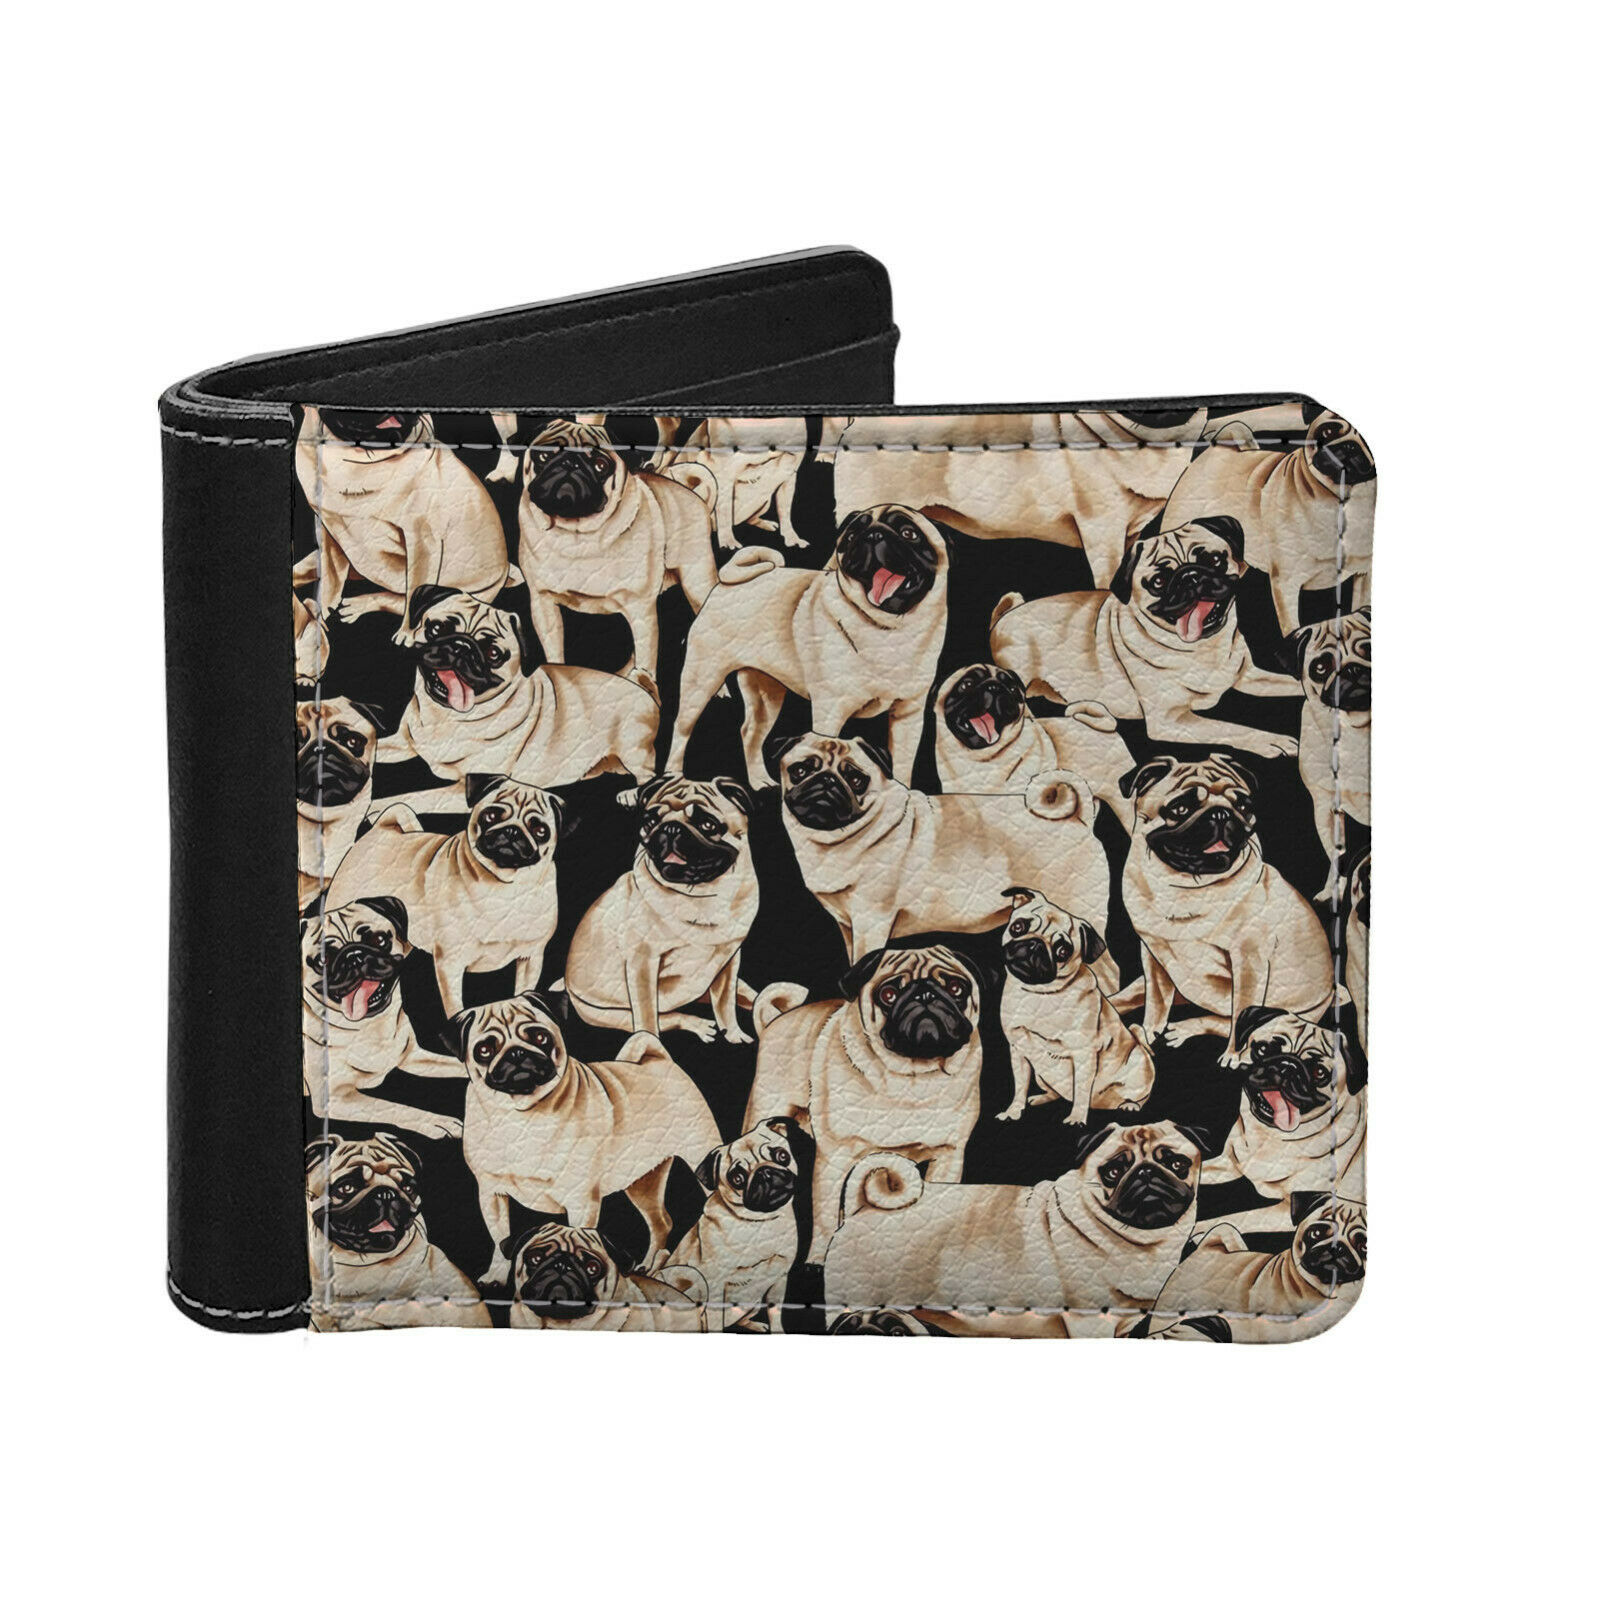 Animals Cute New Mini Leather Wallet Business Credit Card Holder Wallet for Men